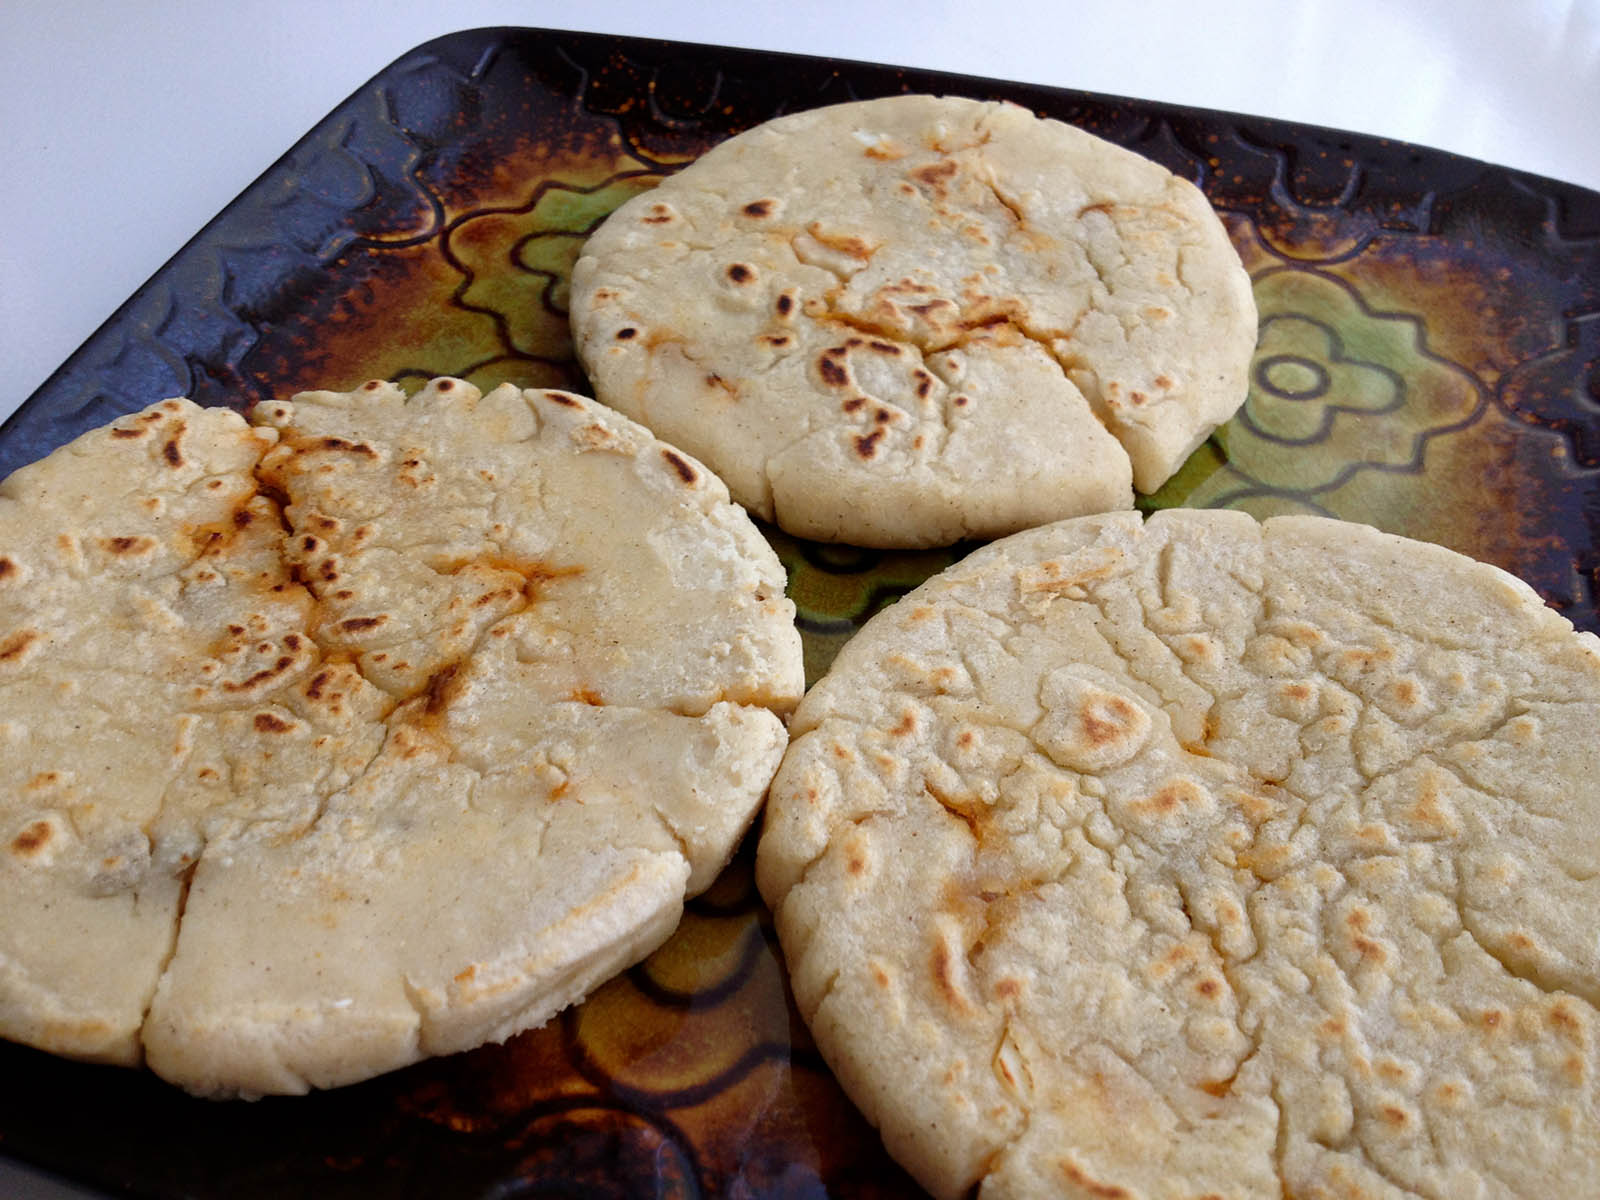 Gorditas and Pupusas